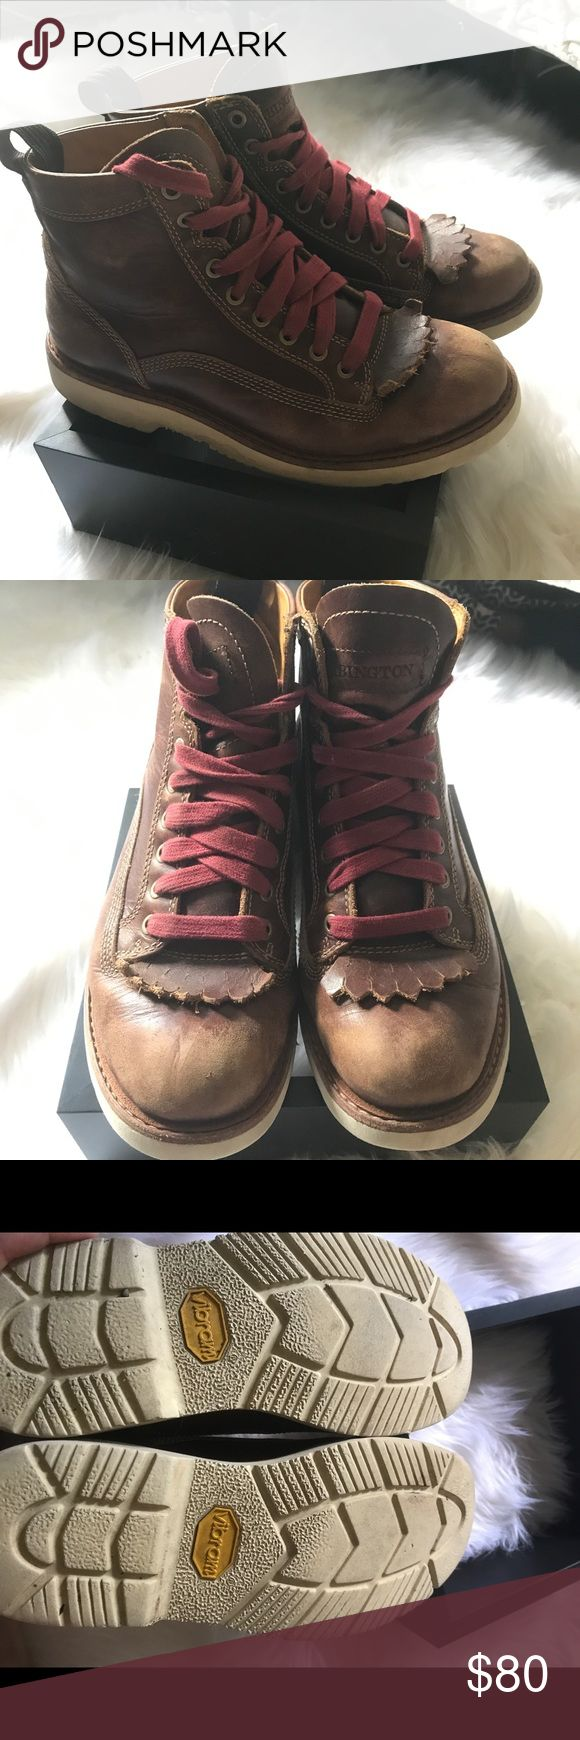 Timberland Abington Boot These are a Timberland Abington genuine leather boot. A little worn. They are a men's 8 but a women's 10. Laces are original. Abington is a sub brand I believe, purchased from the timberland website. Will take best offer Timberland Shoes Lace Up Boots